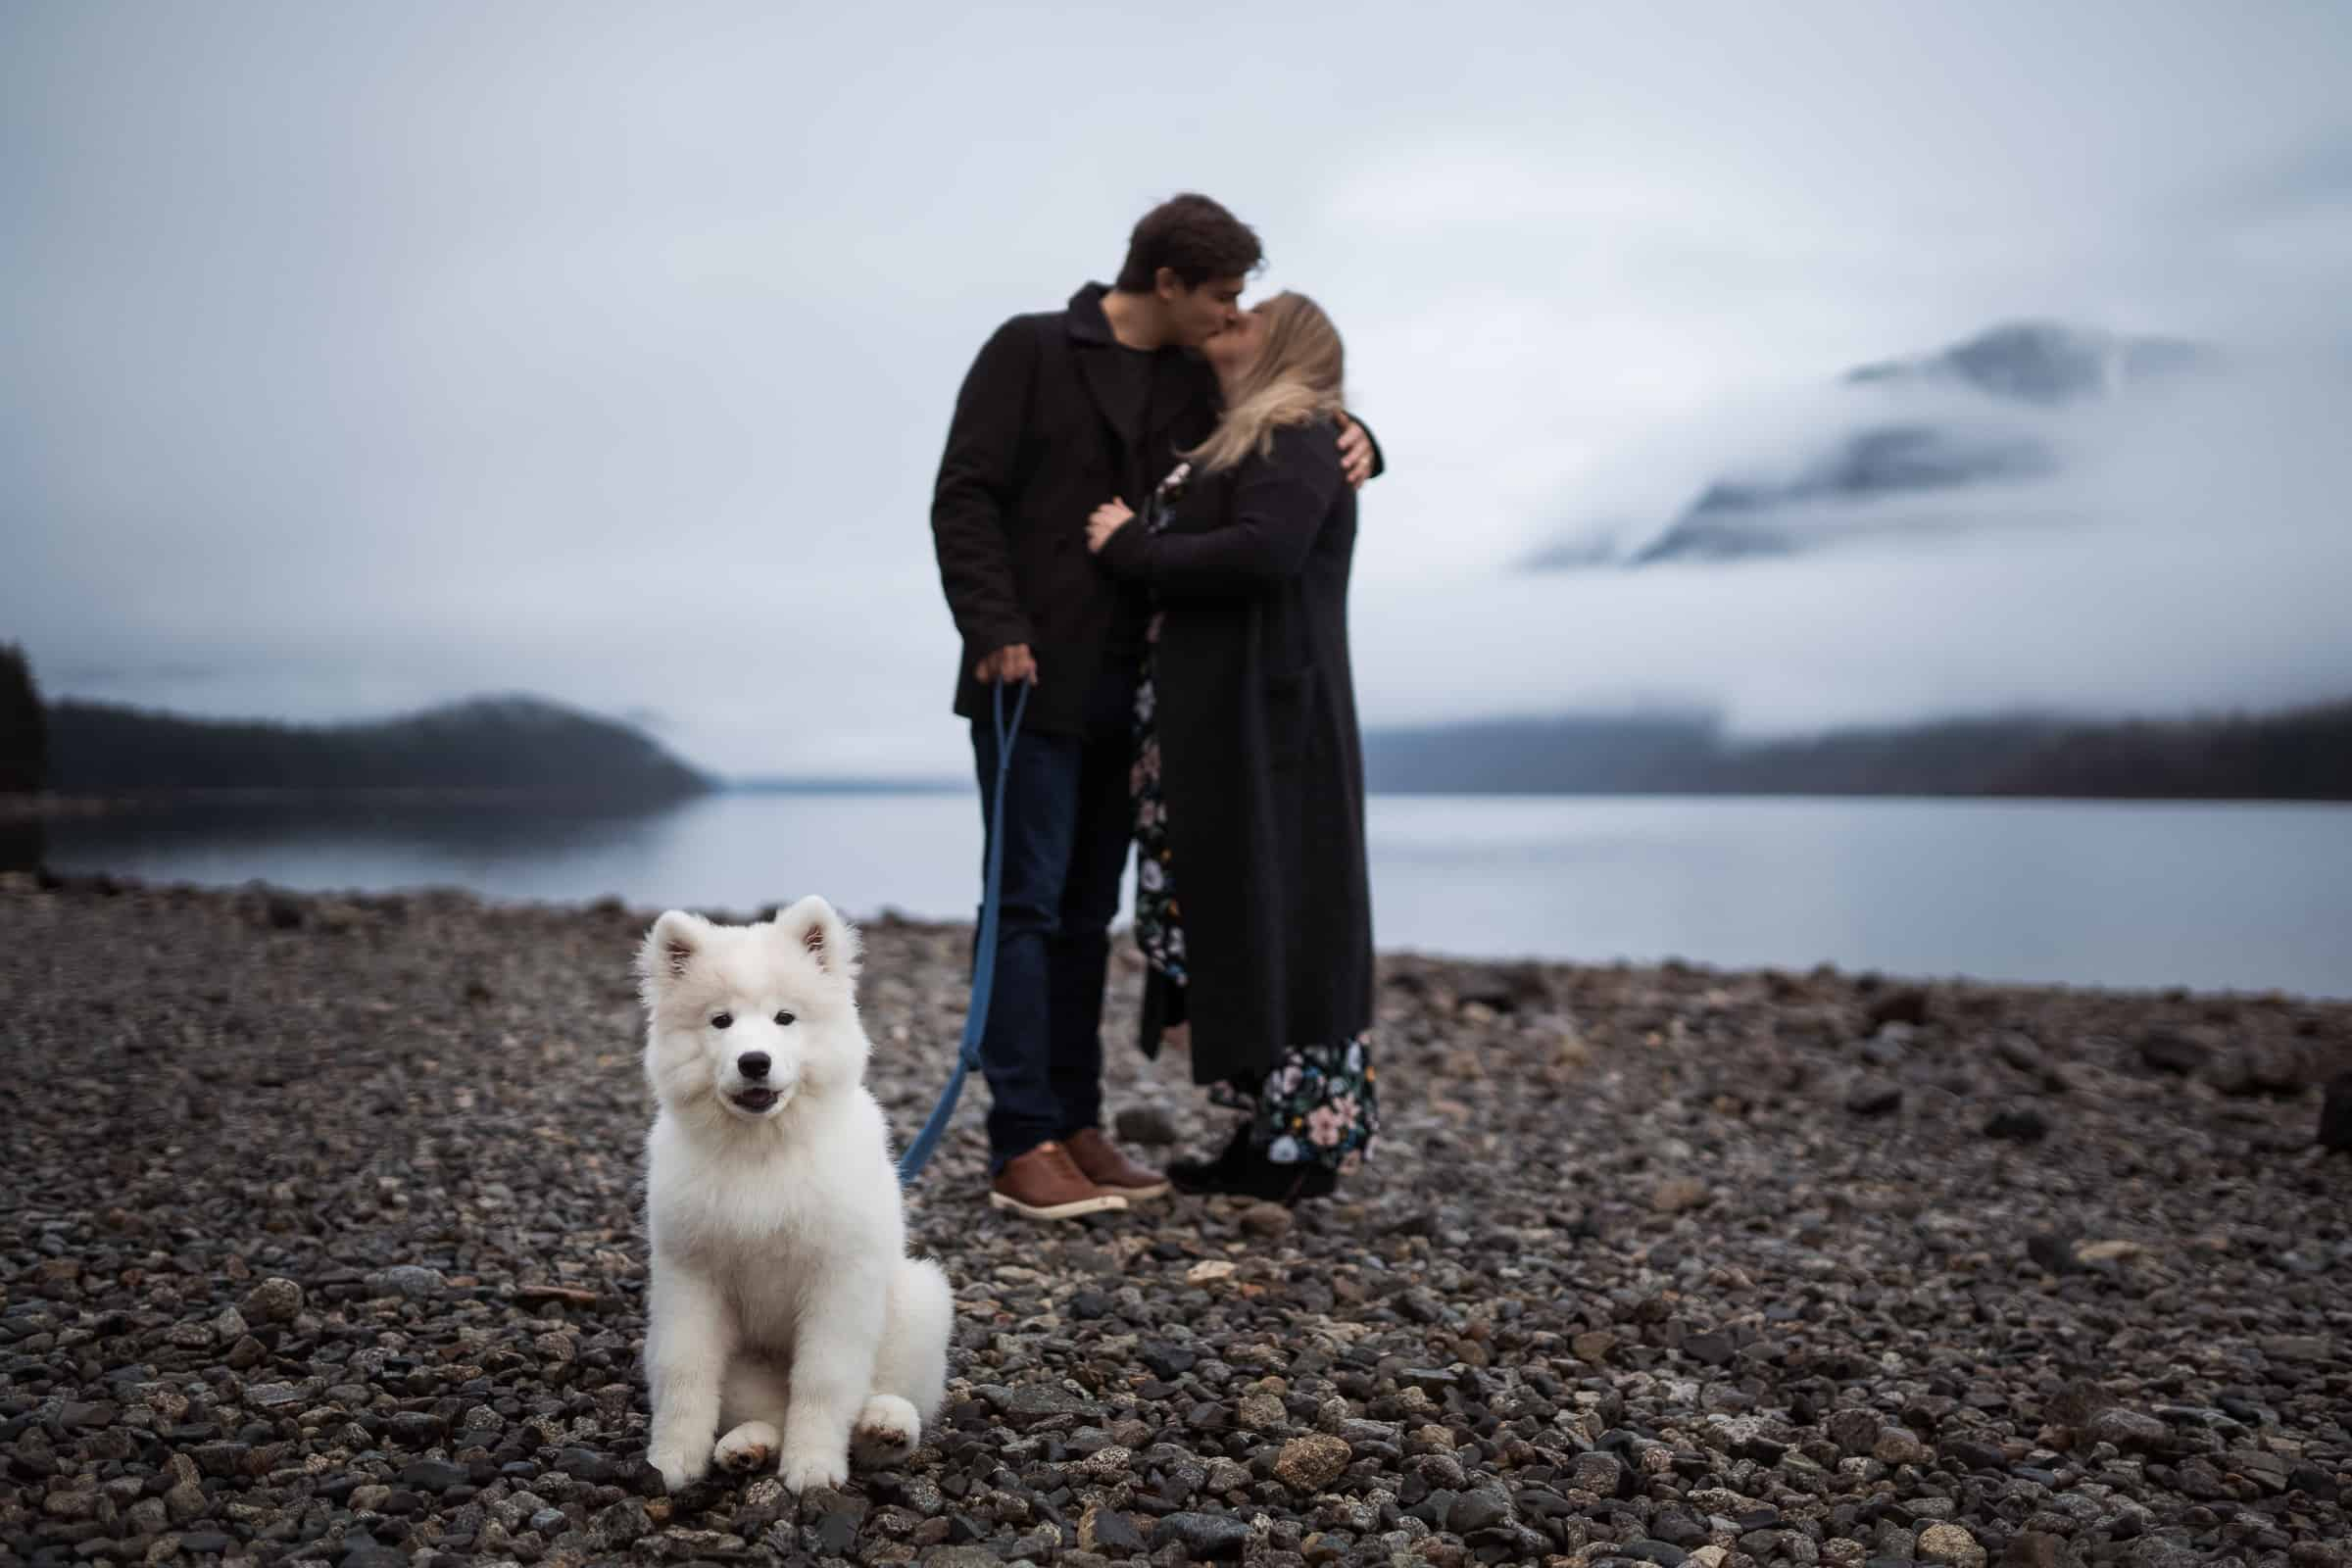 couple kissing by foggy lake in background with white fluffy dog in foreground